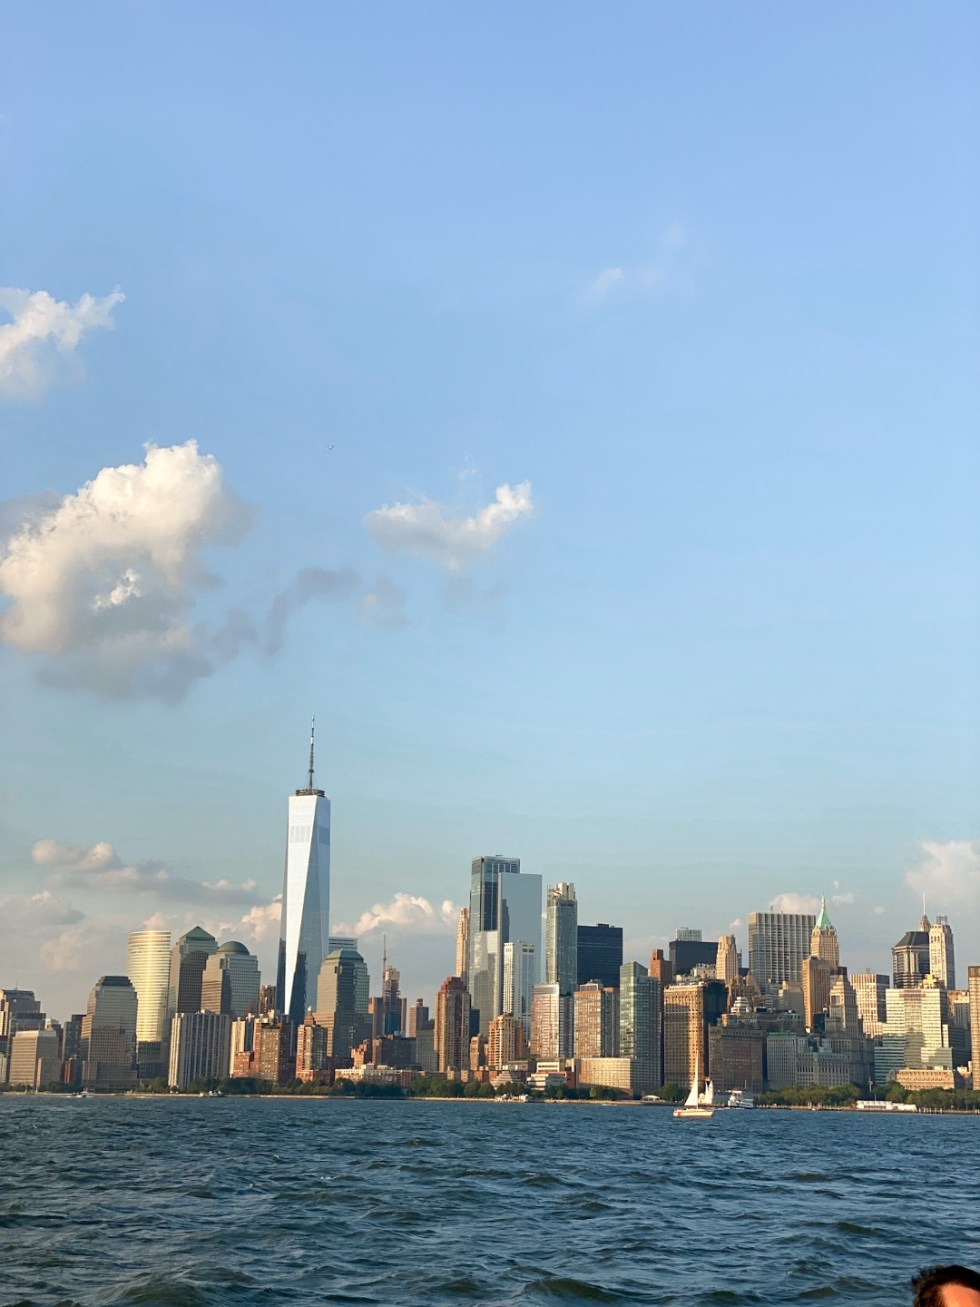 NYC Summer Weekend: Things to Do in NYC in the Summer - I'm Fixin' To - @imfixintoblog   NYC Summer Weekend by popular NC travel blog, I'm Fixin' To: image of the NYC skyline.